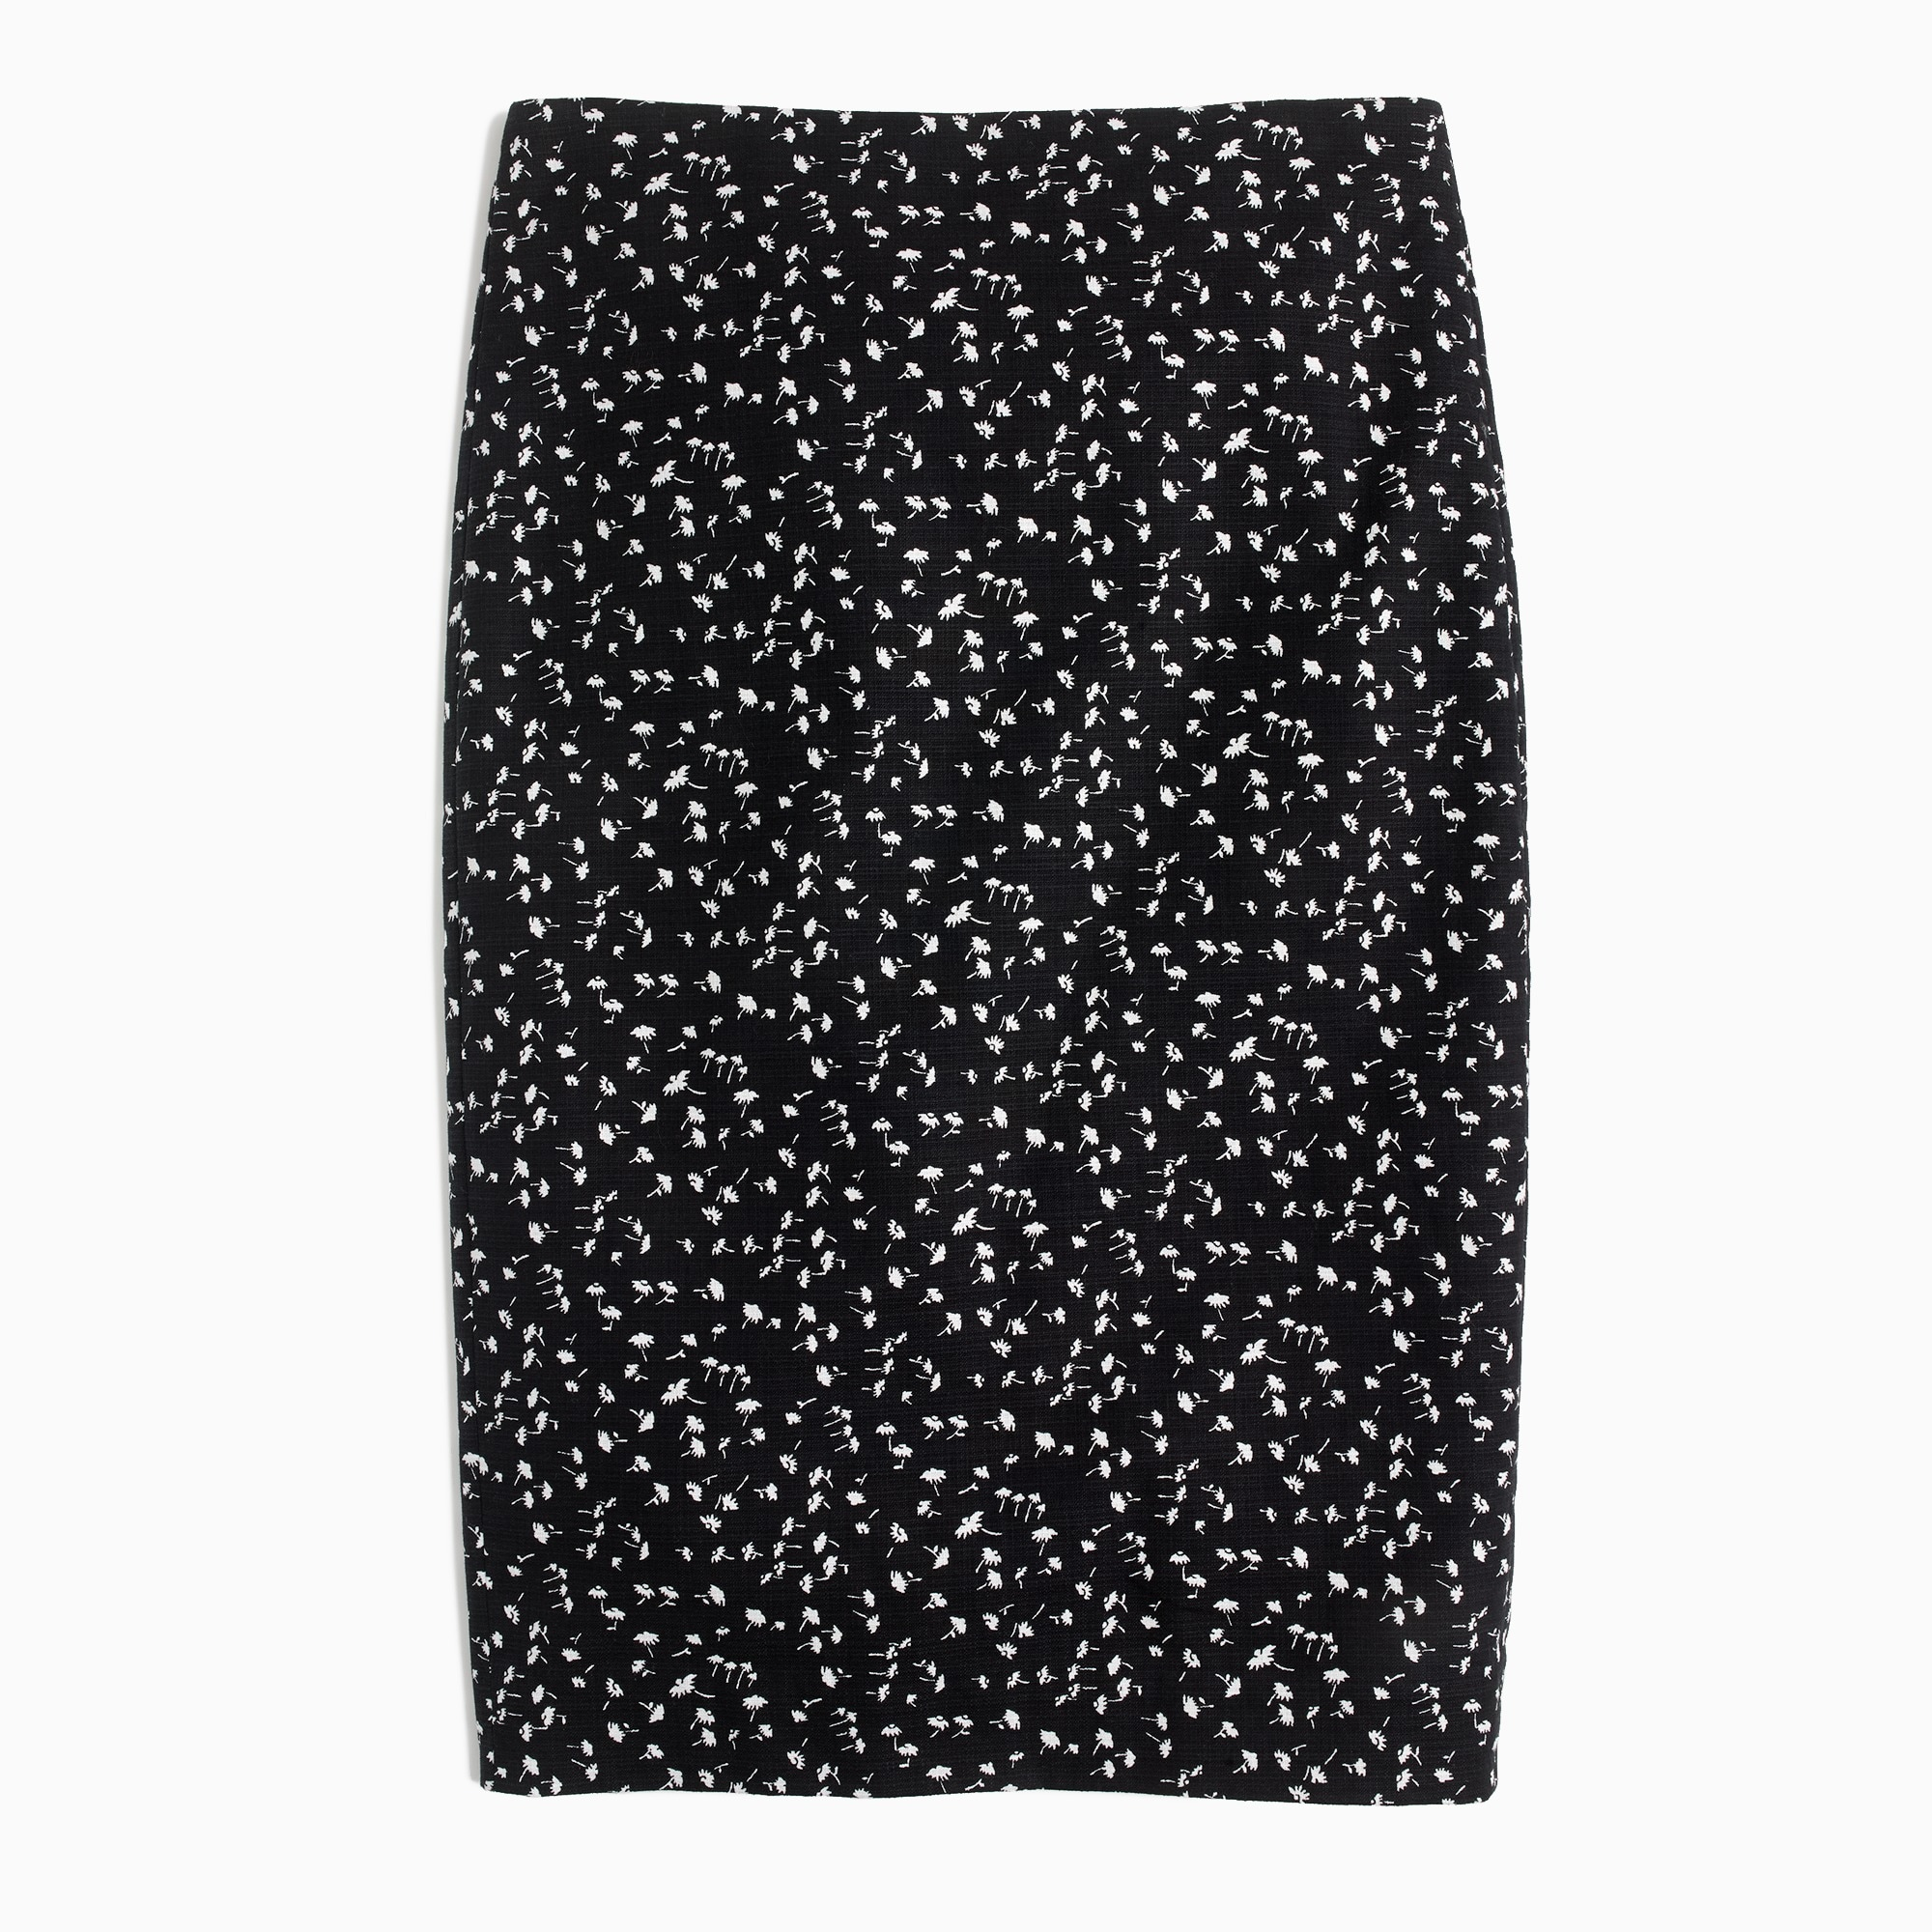 women's pencil skirt in daisy floral - women's skirts